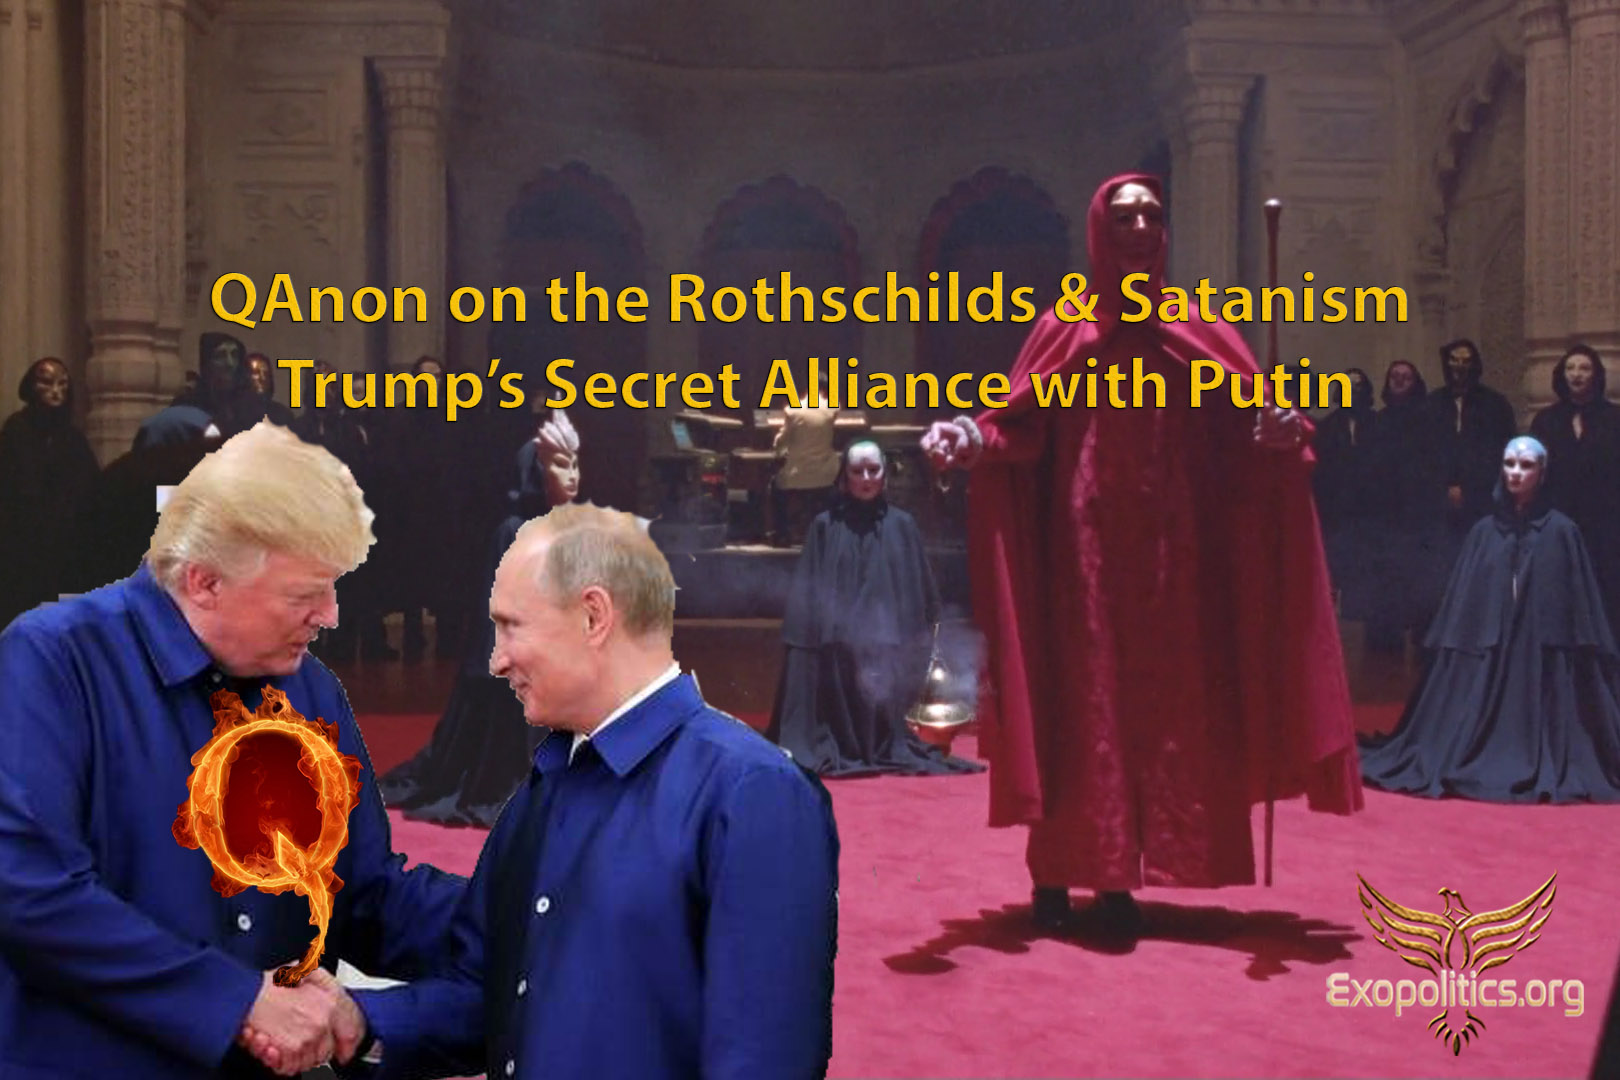 QAnon on the Rothschilds & Satanism – Trump's Secret Alliance with Putin